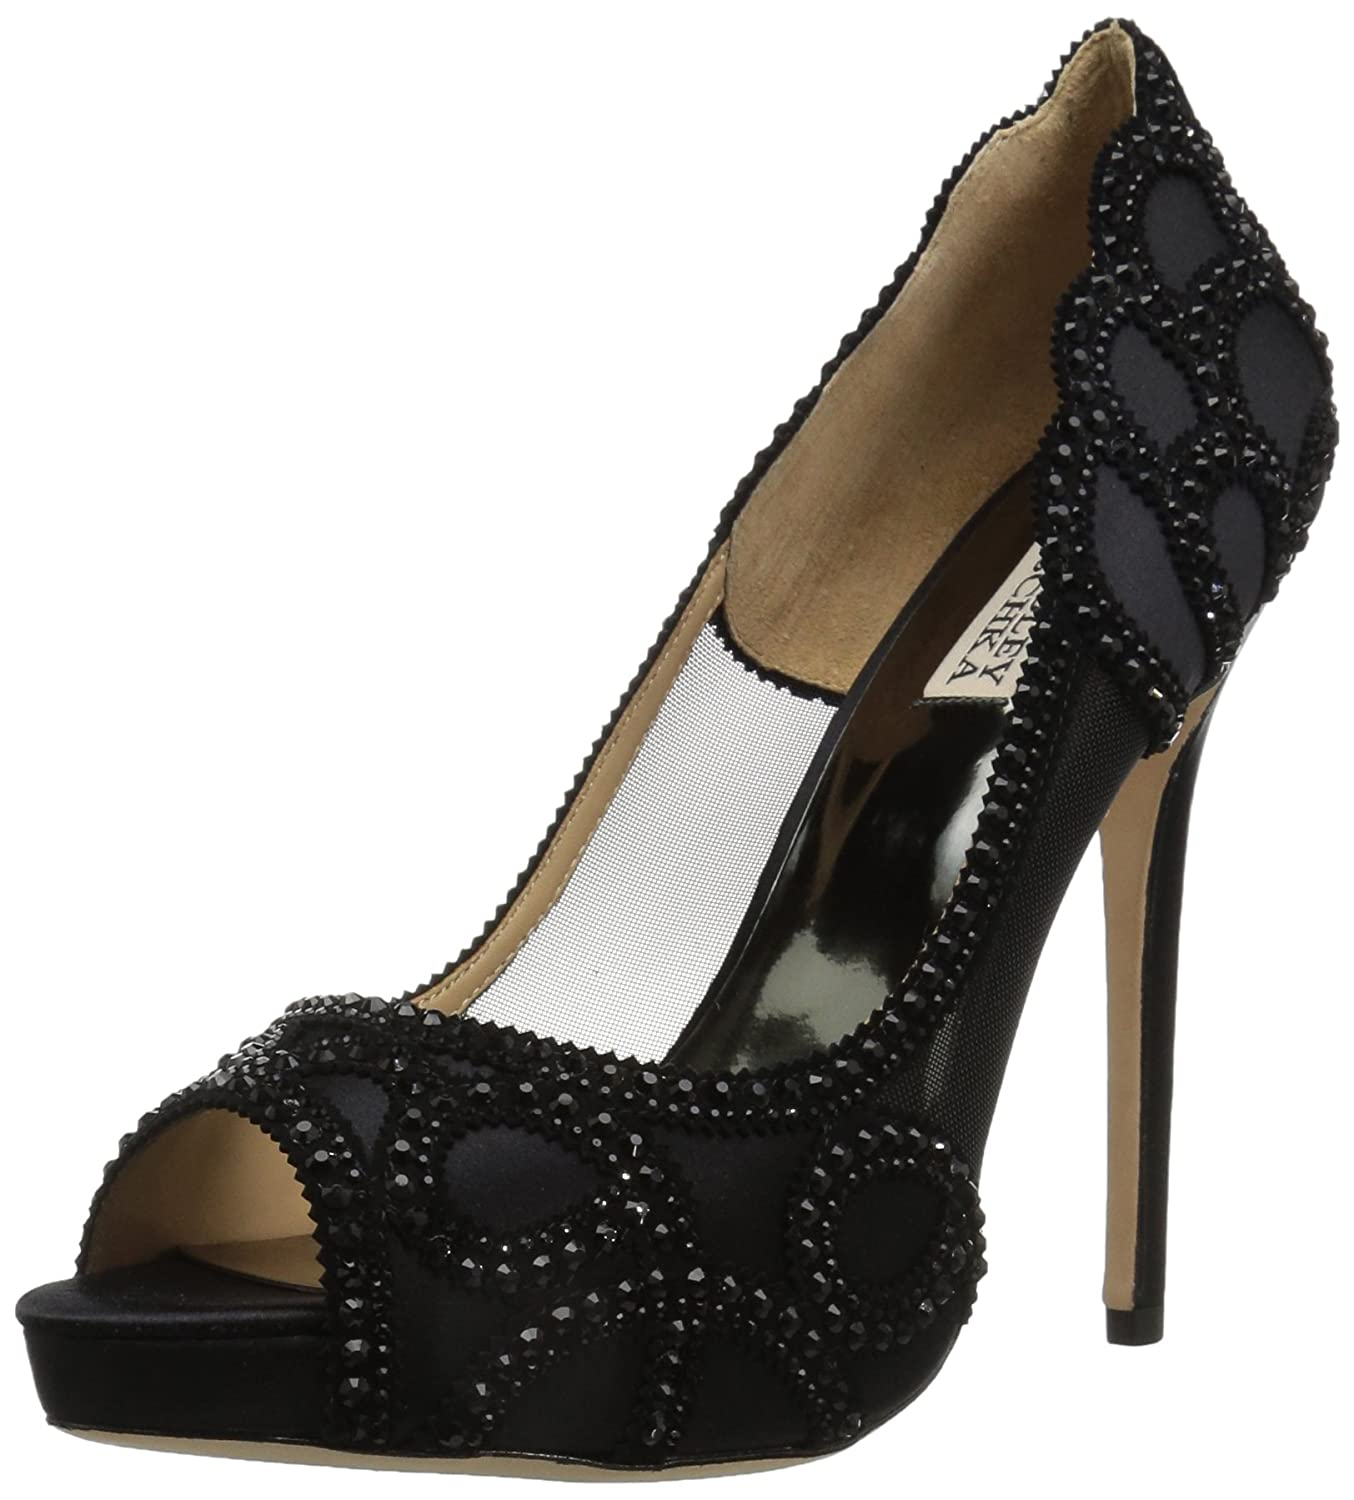 Badgley Mischka Women's Witney Pump B073CWF4PL 9 B(M) US|Black